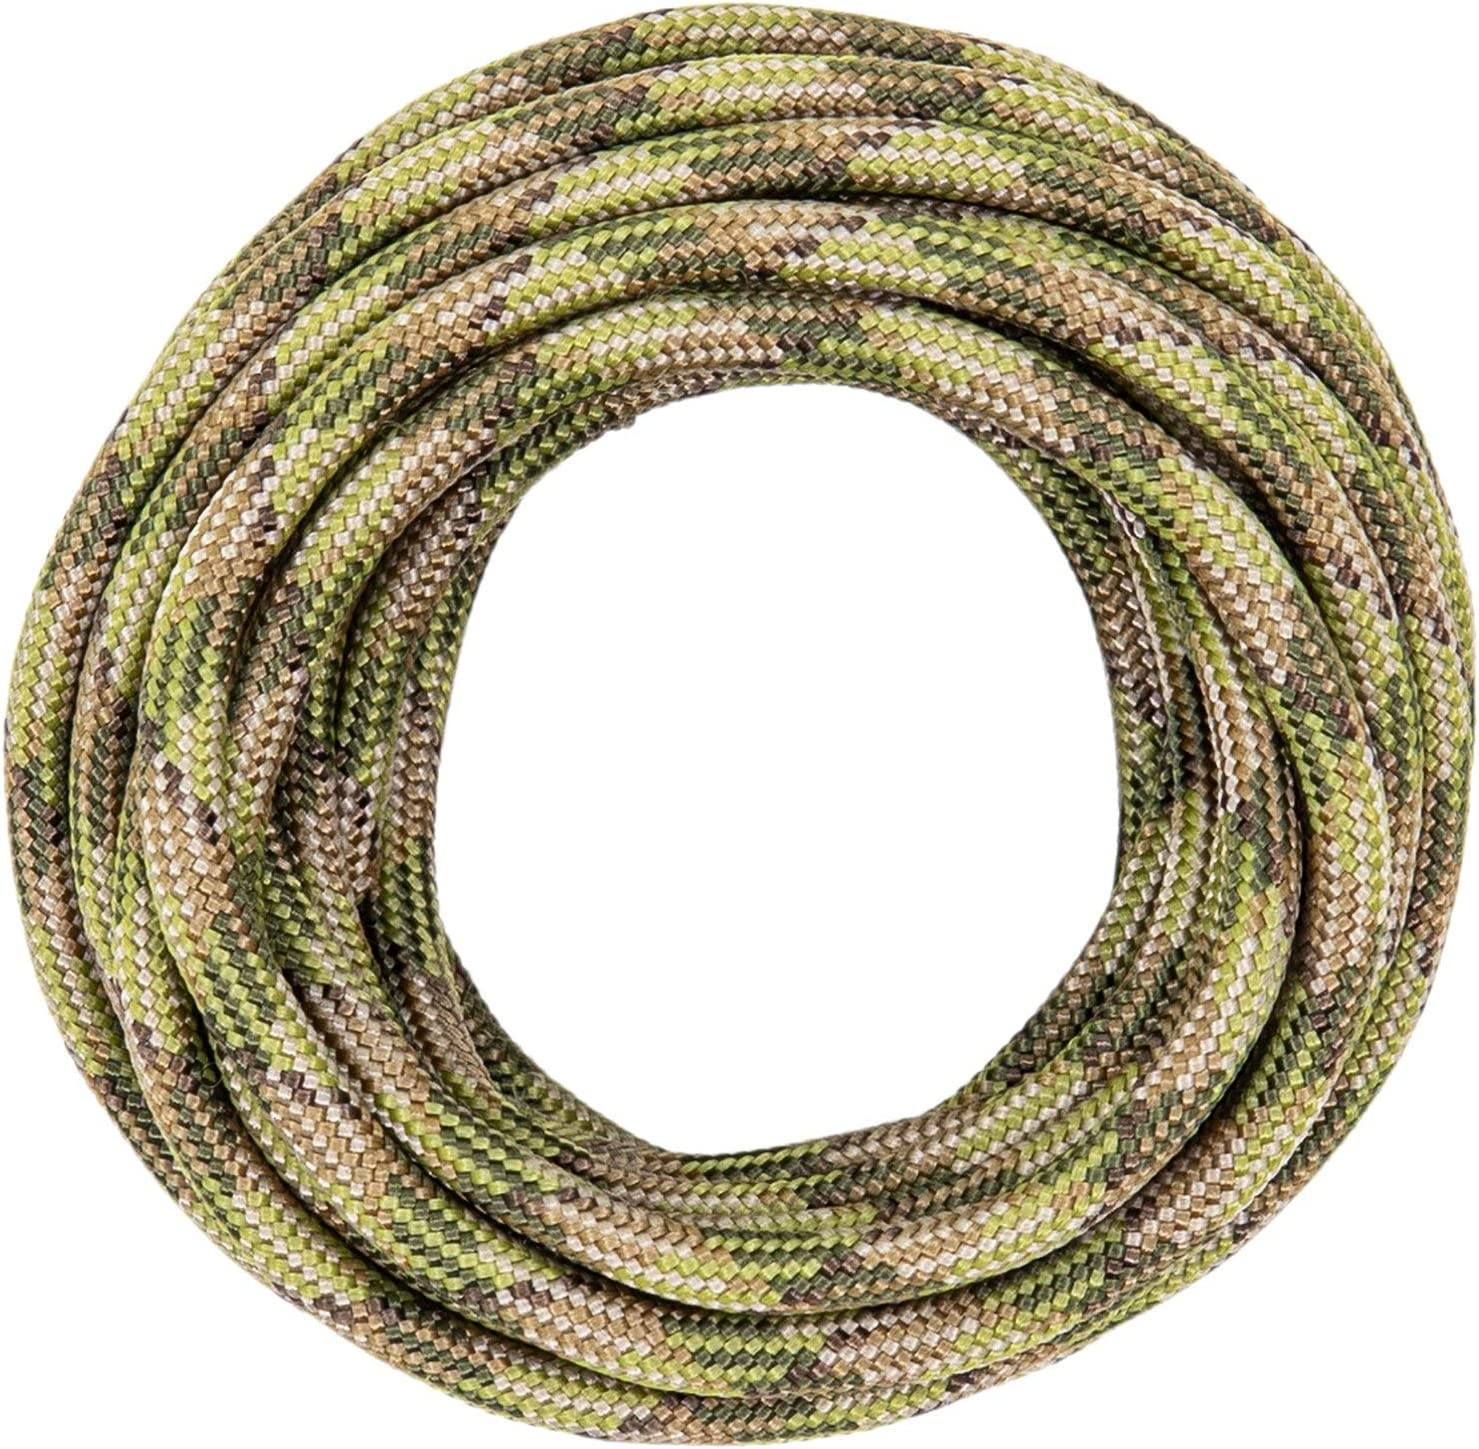 SGT KNOTS Type III Paracord Baltimore Mall Max 59% OFF Rope - Hik 550 for Camping